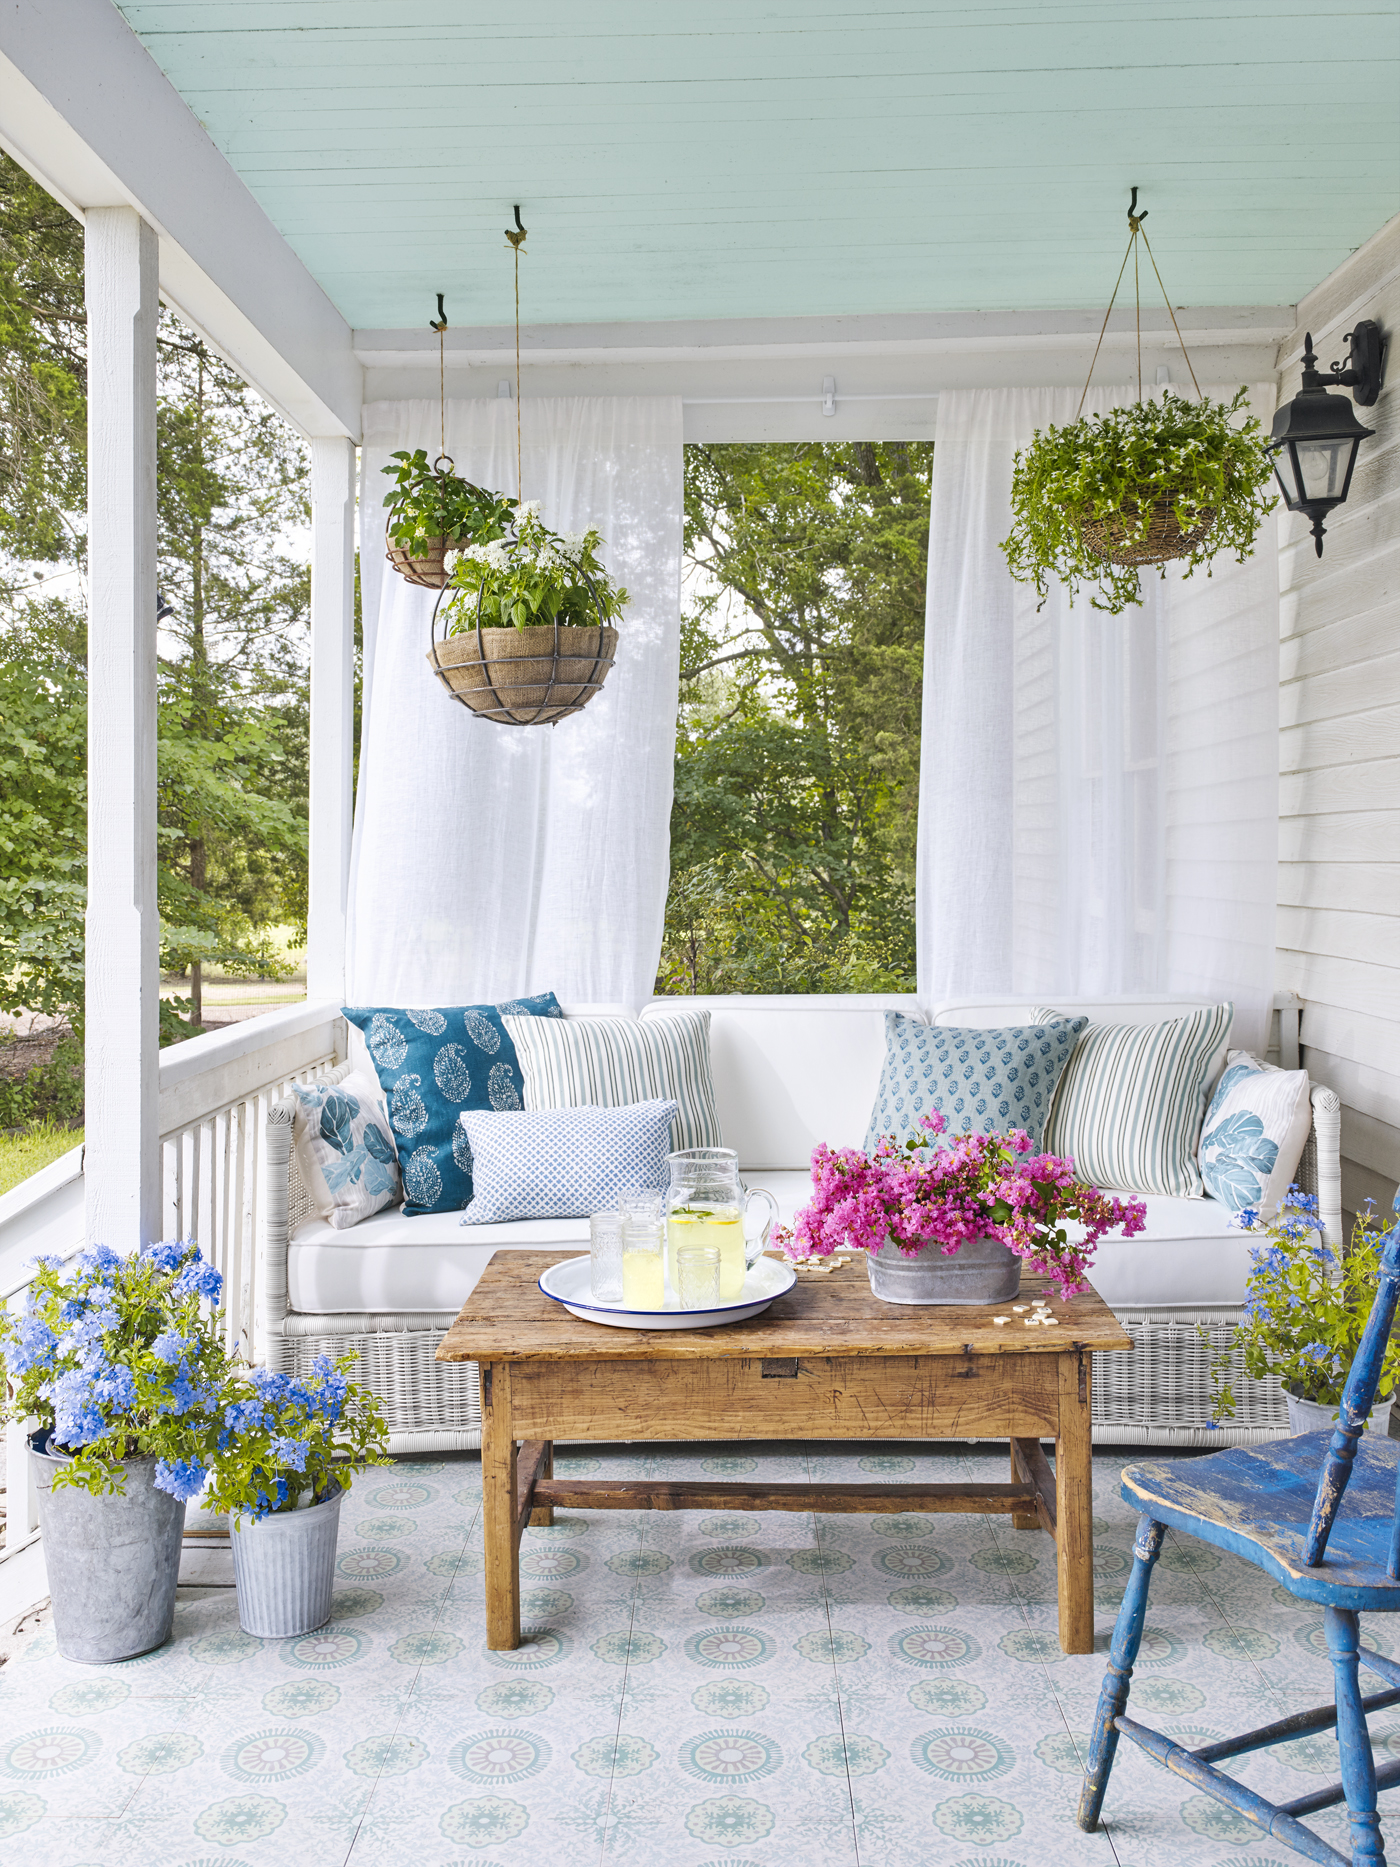 The art of porching front porch ideas - Indoor patio decorating ideas ...